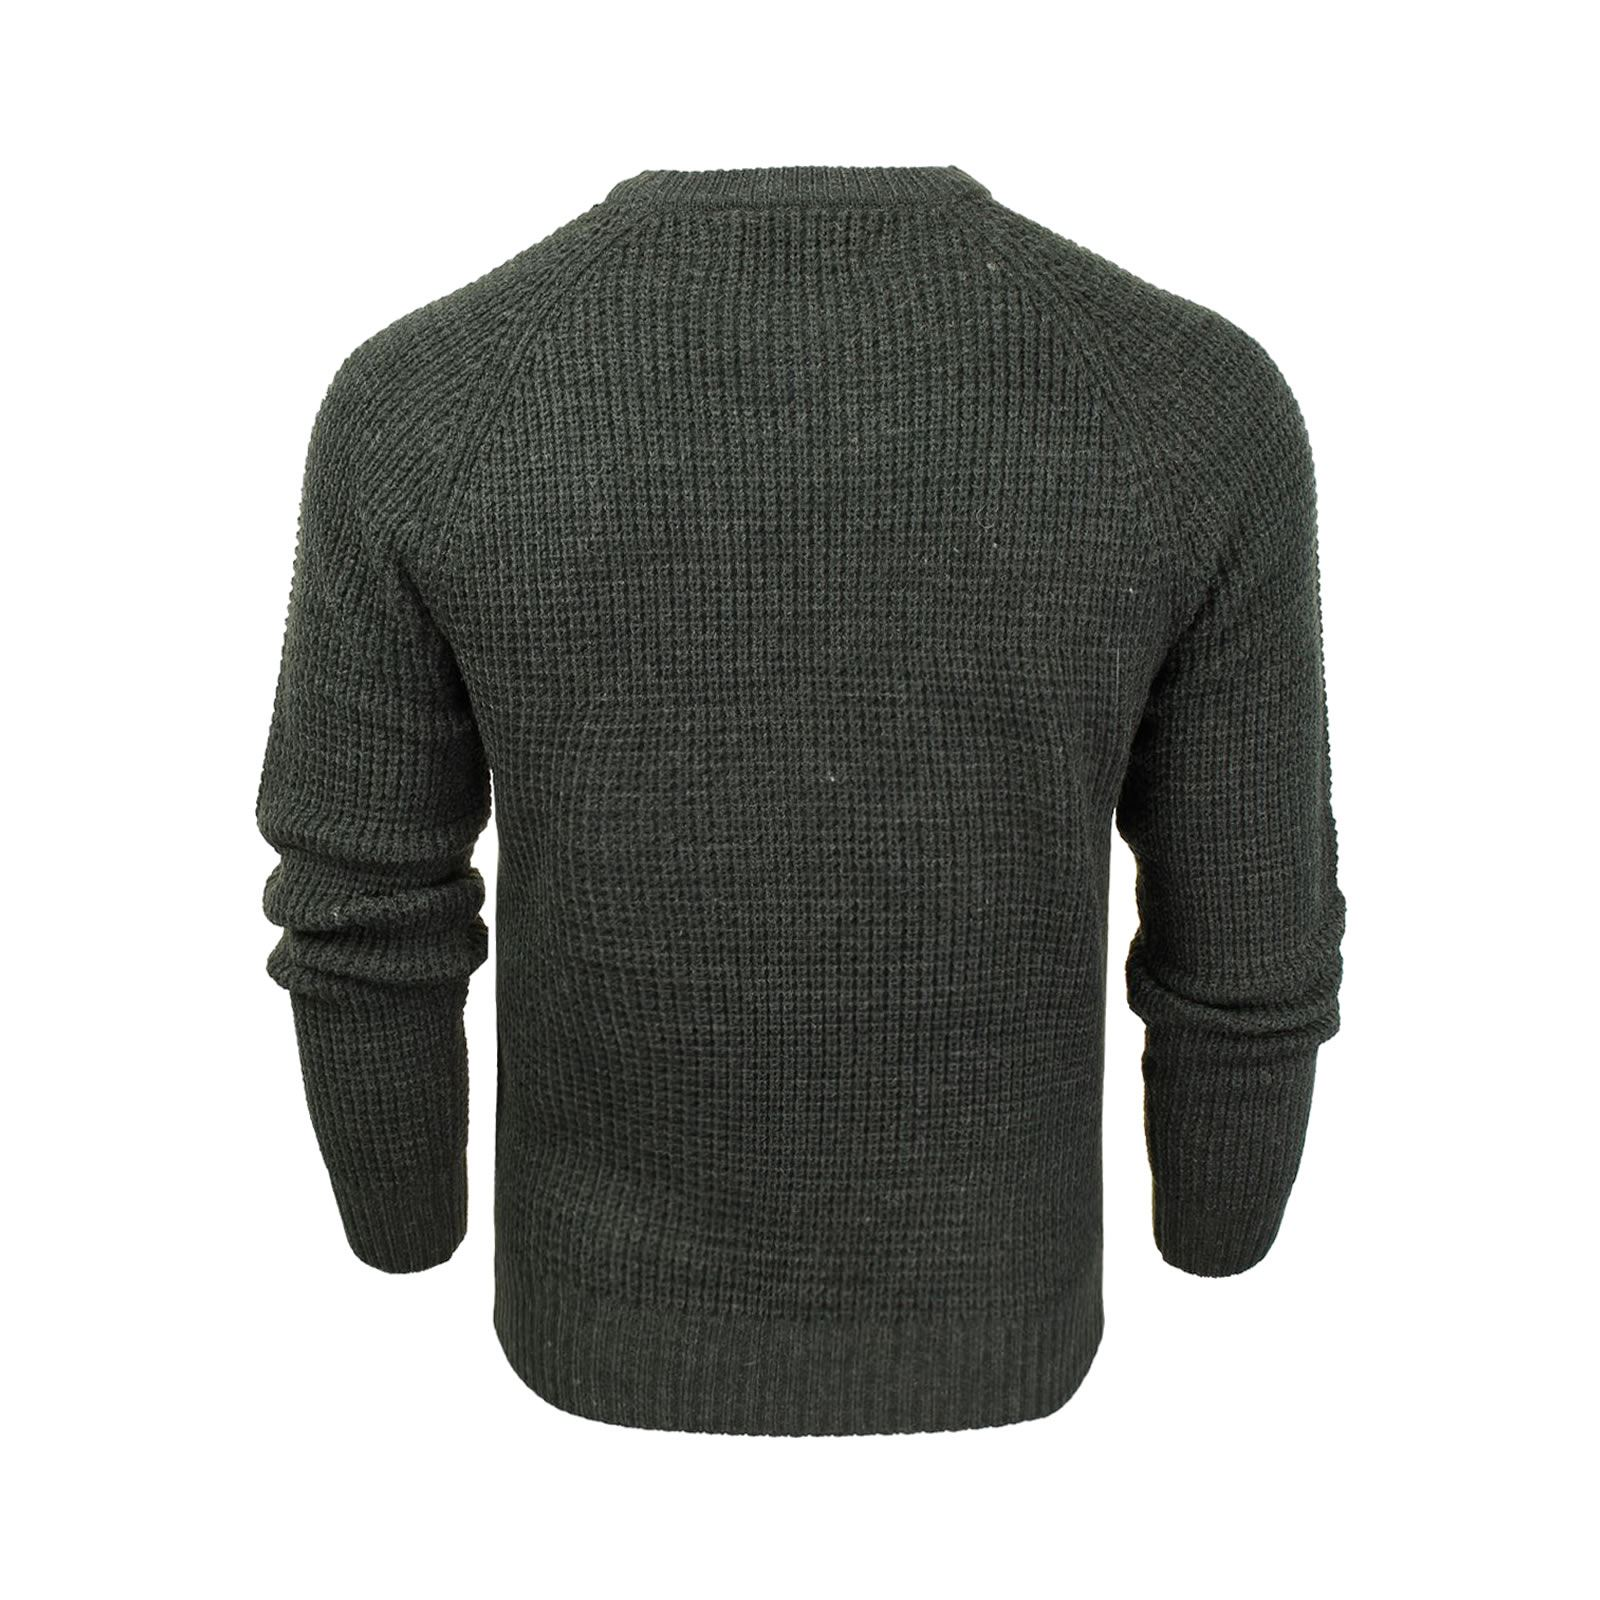 Mens-Jumper-Crosshatch-General-Waffle-Knitted-Crew-Neck-Wool-Mix-Sweater thumbnail 6